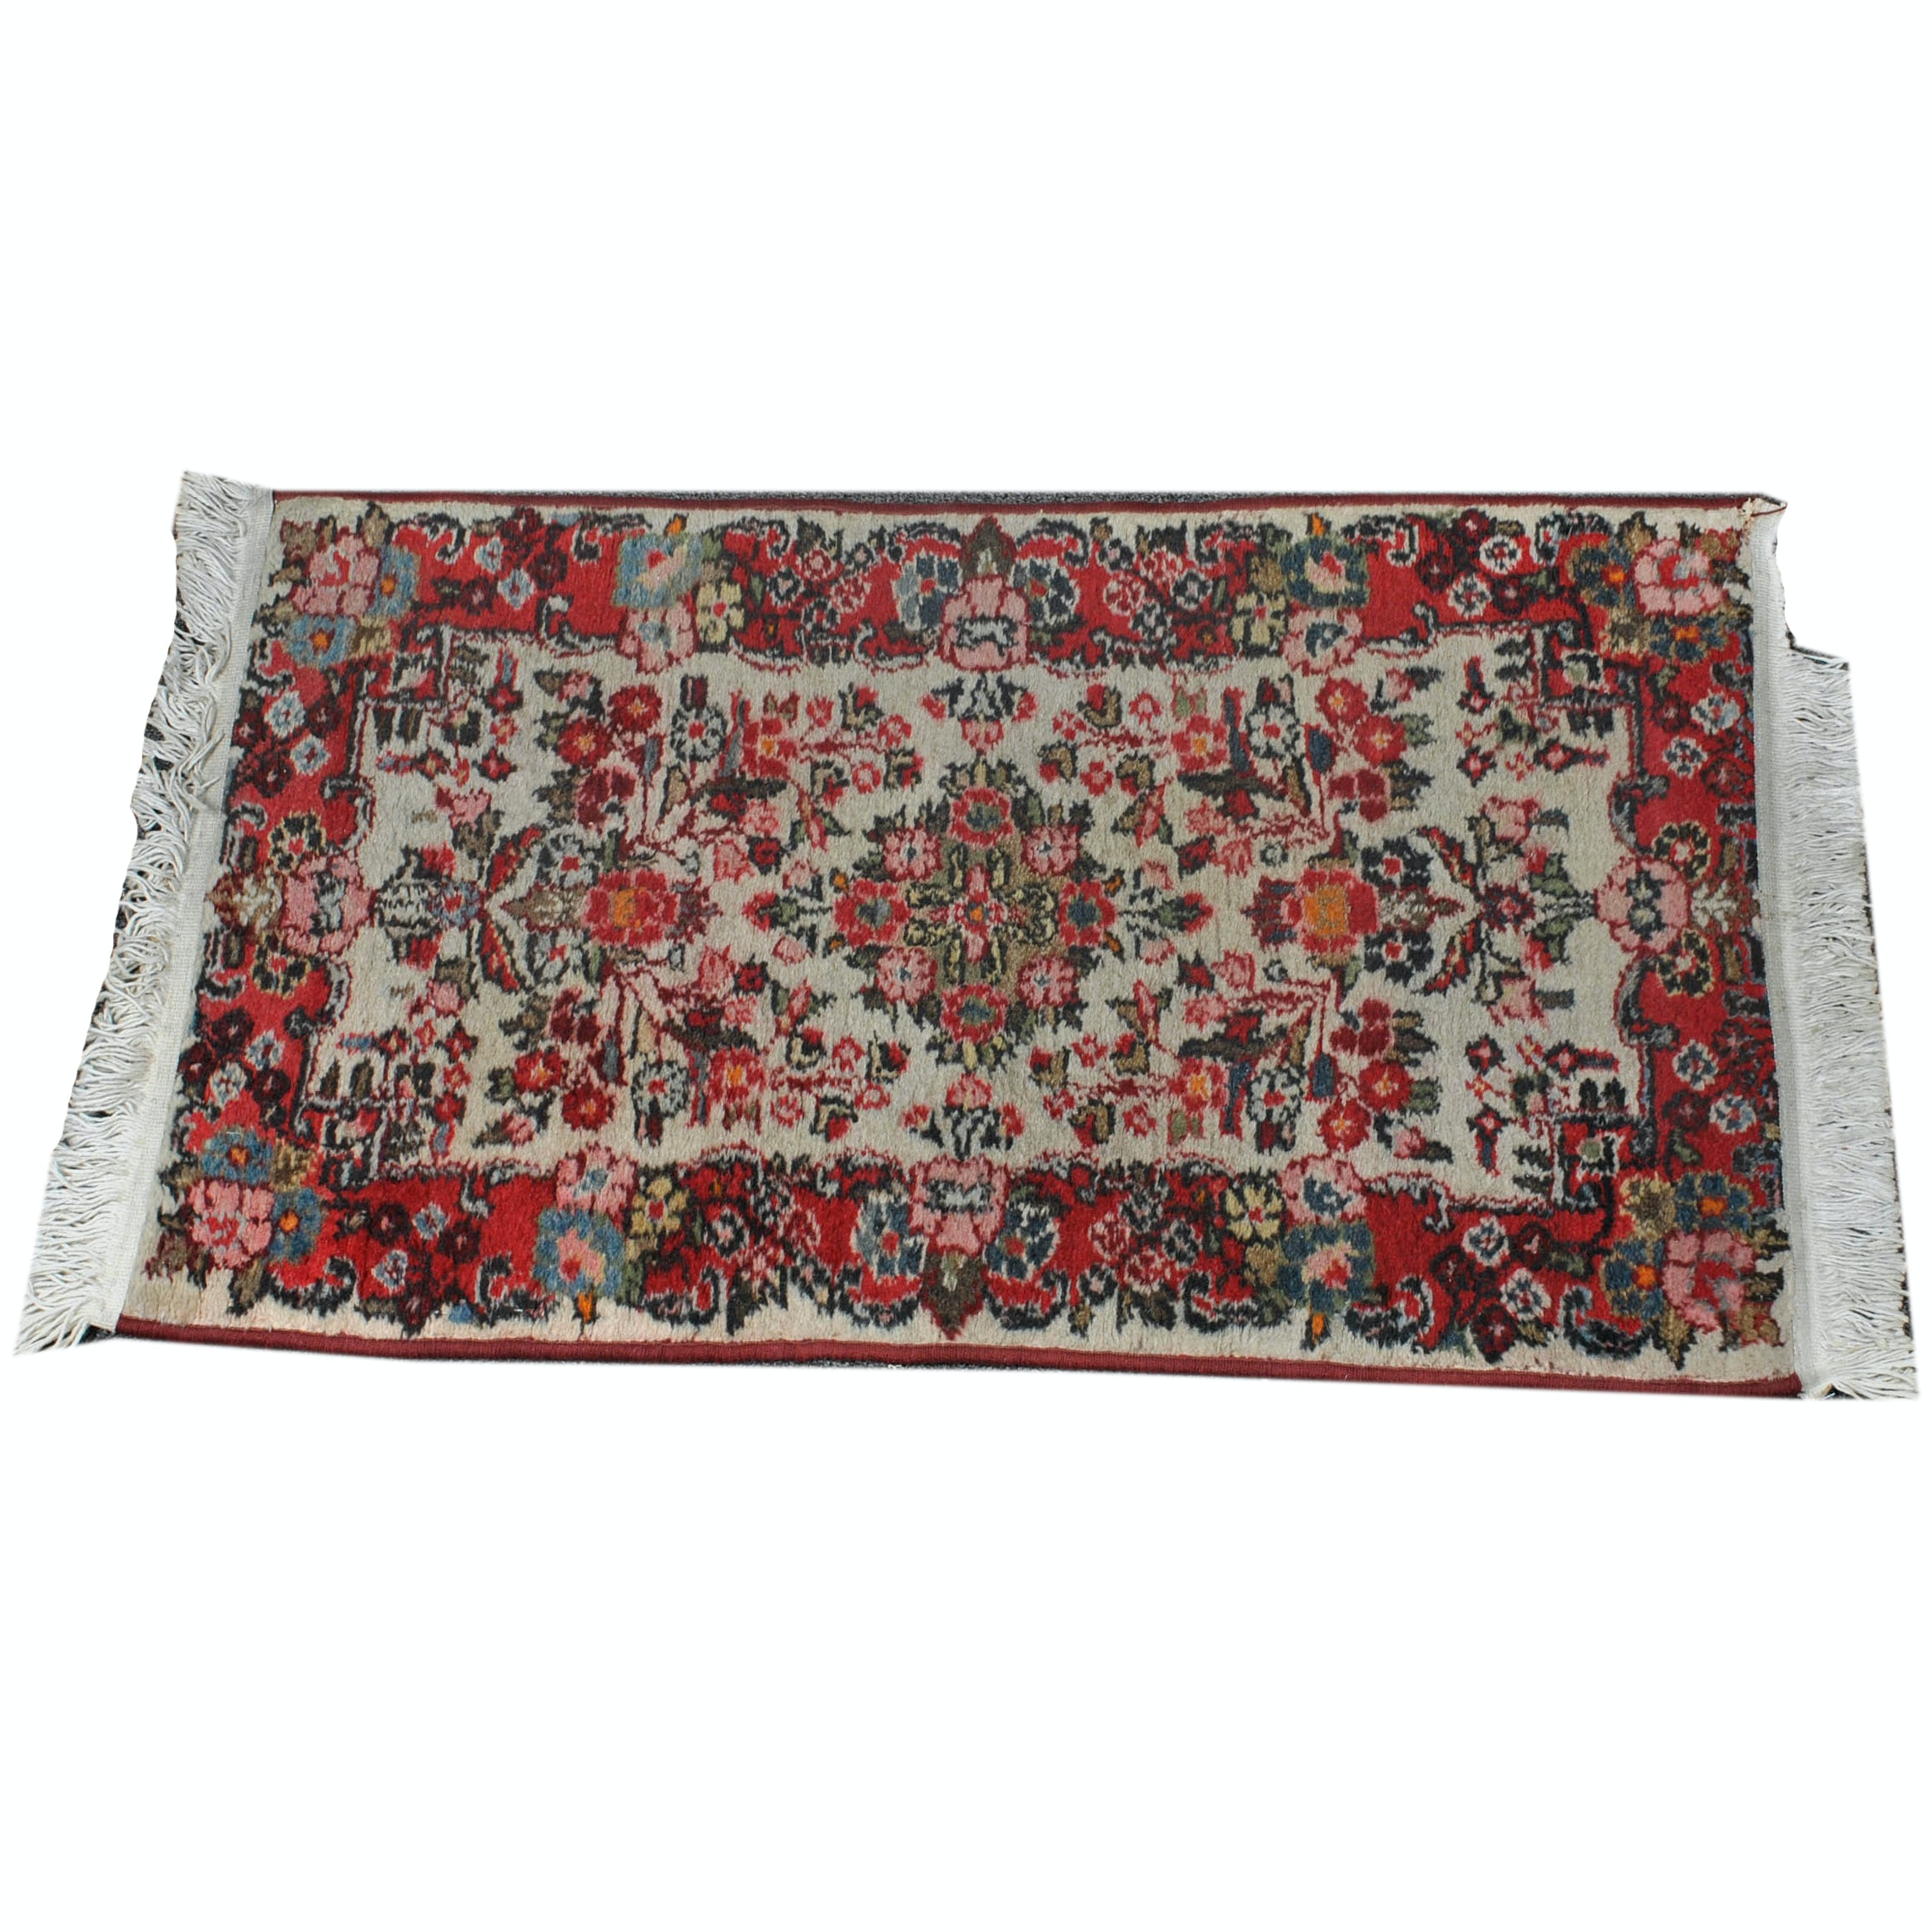 Semi-Antique Hand-Knotted Persian Malayer Wool Accent Rug